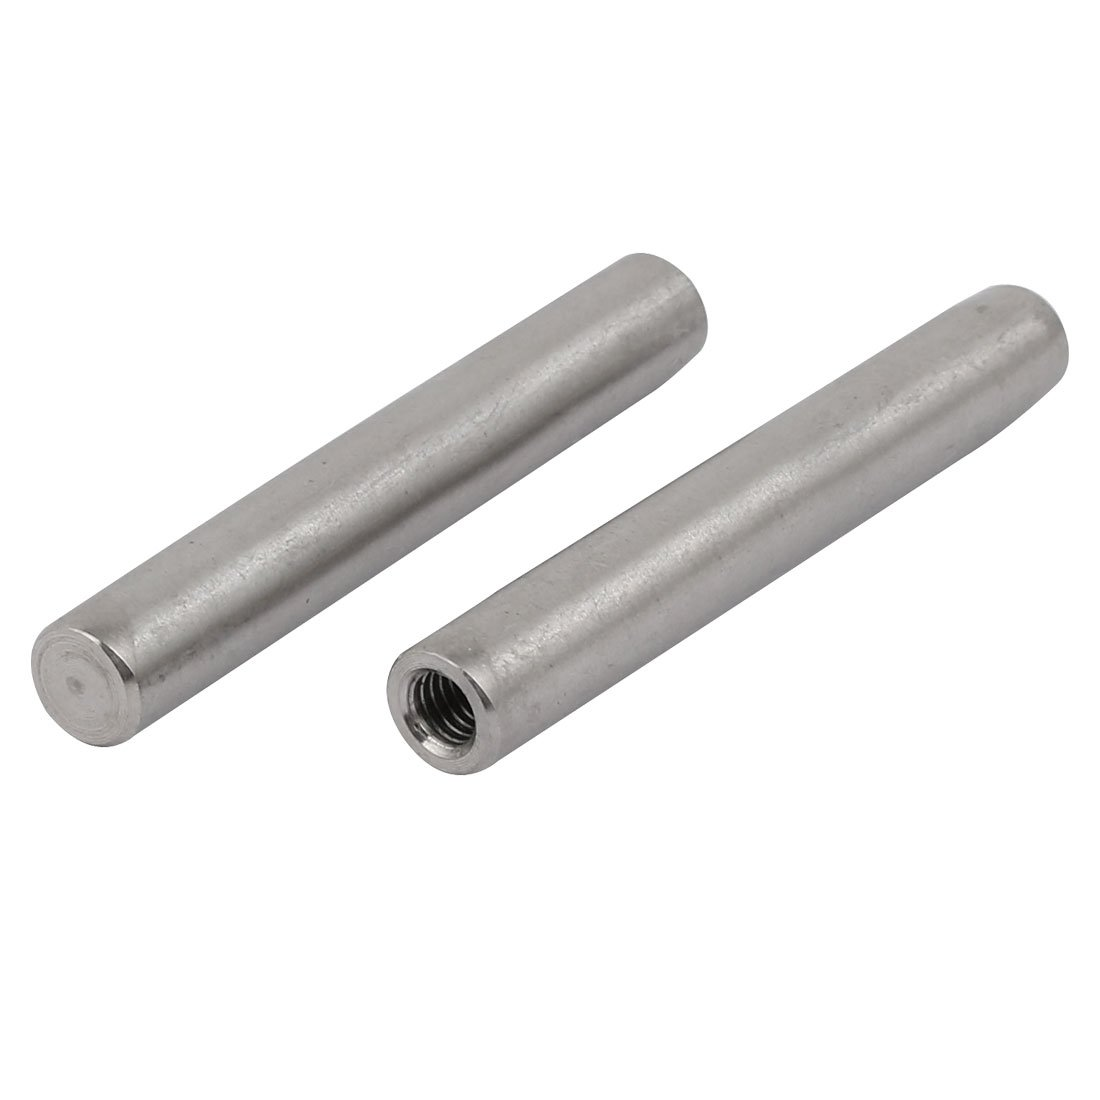 Sourcingmap 304 Stainless Steel M6 Female Thread 10mm x 70mm Cylindrical Dowel Pin 2pcs a17110100ux0133